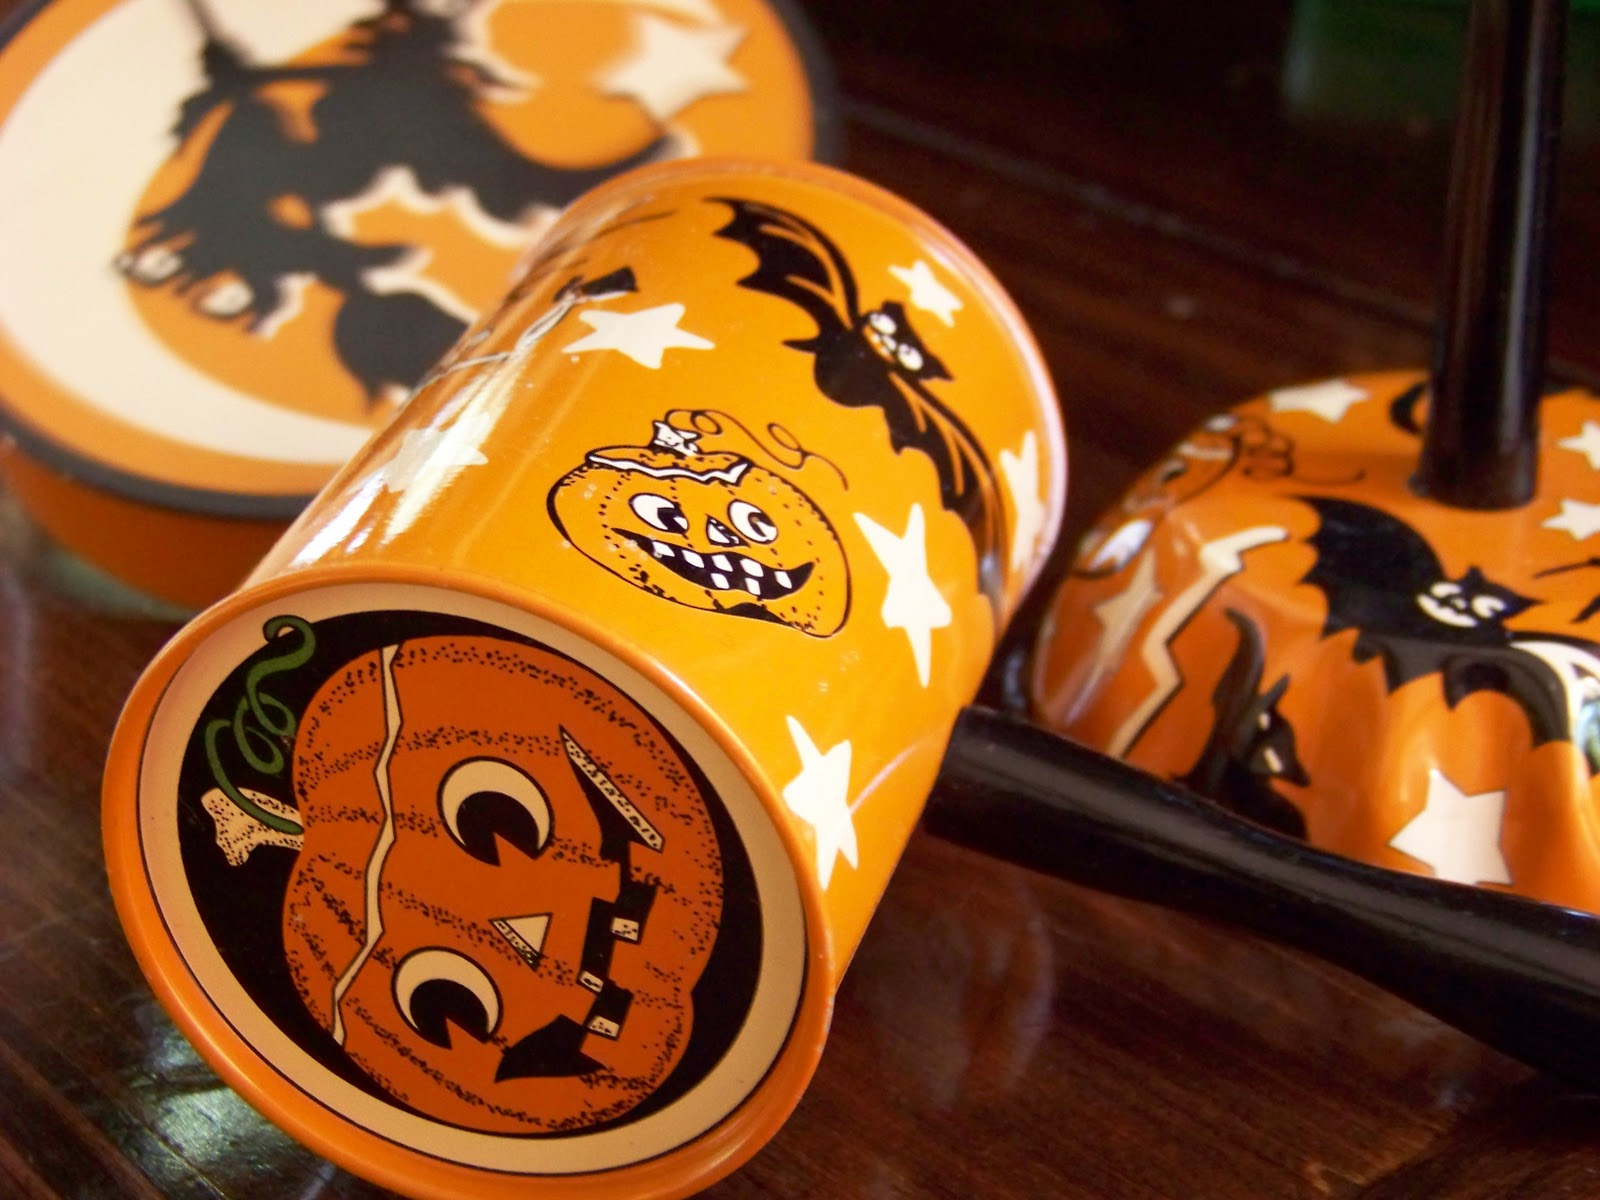 so instead we have quite a few things that only look old but still give that old fashioned feel these are halloween noisemakers